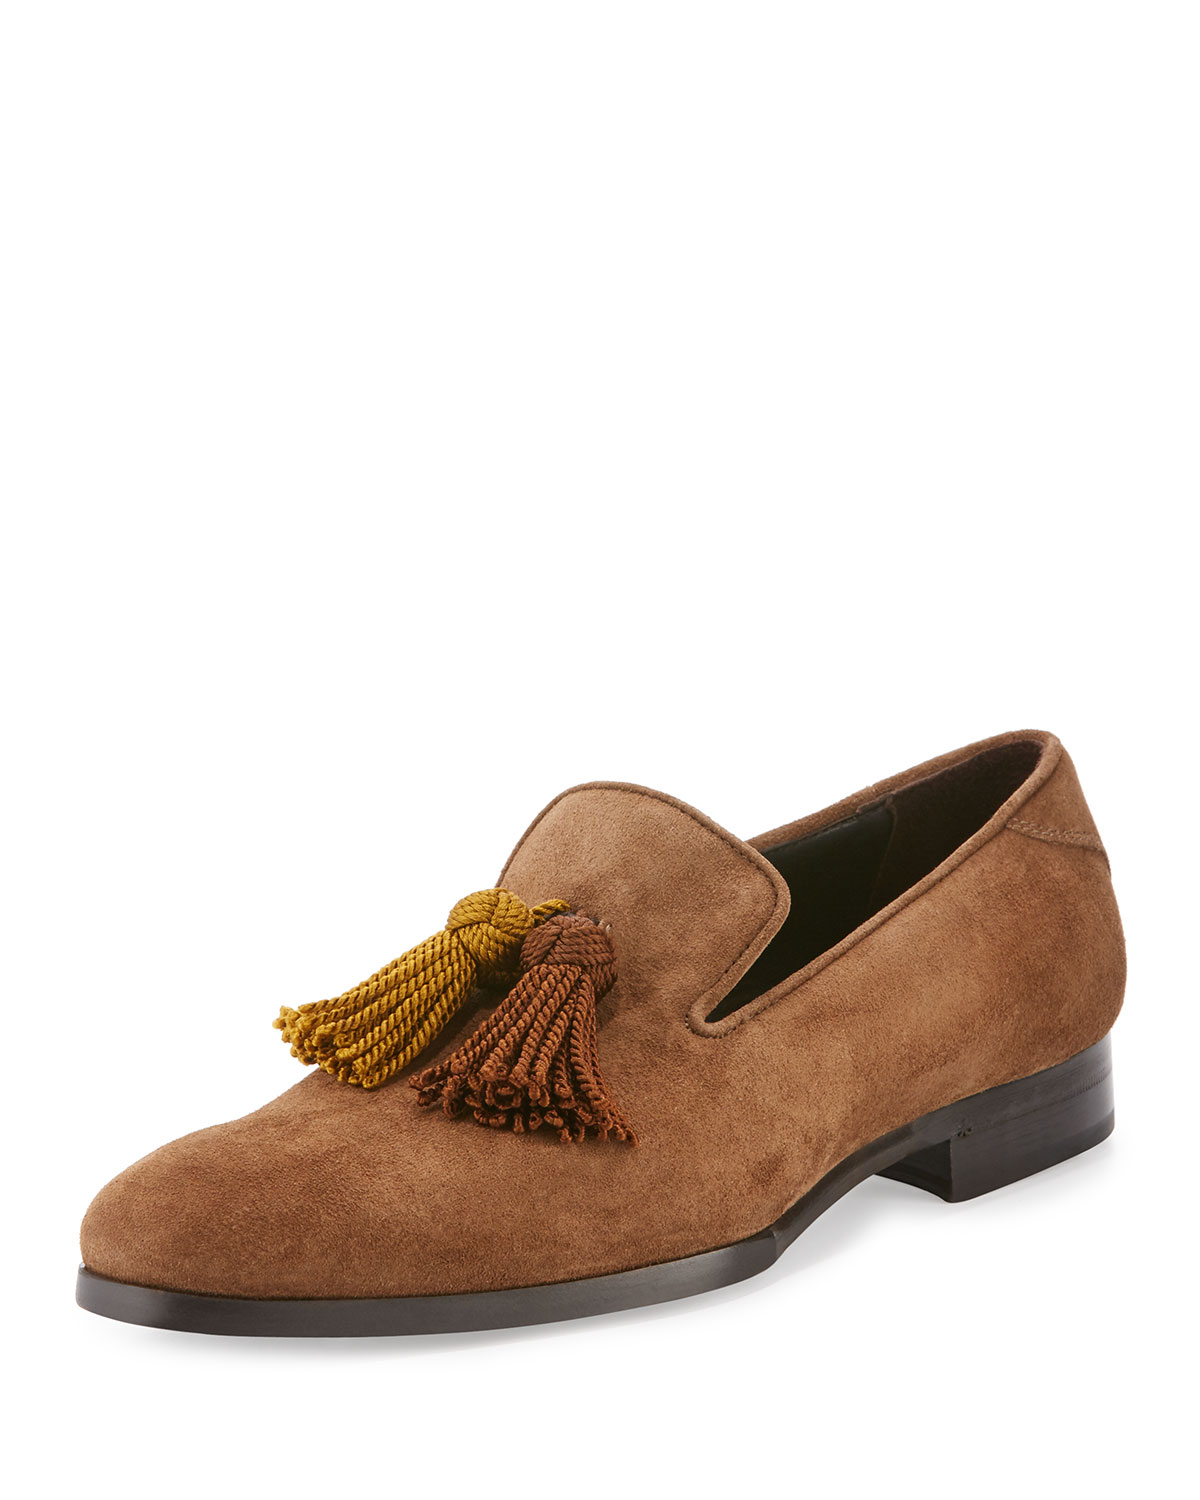 Jimmy choo foxley men s autumn suede tassel loafer shoes for Jimmy choo mens shirts